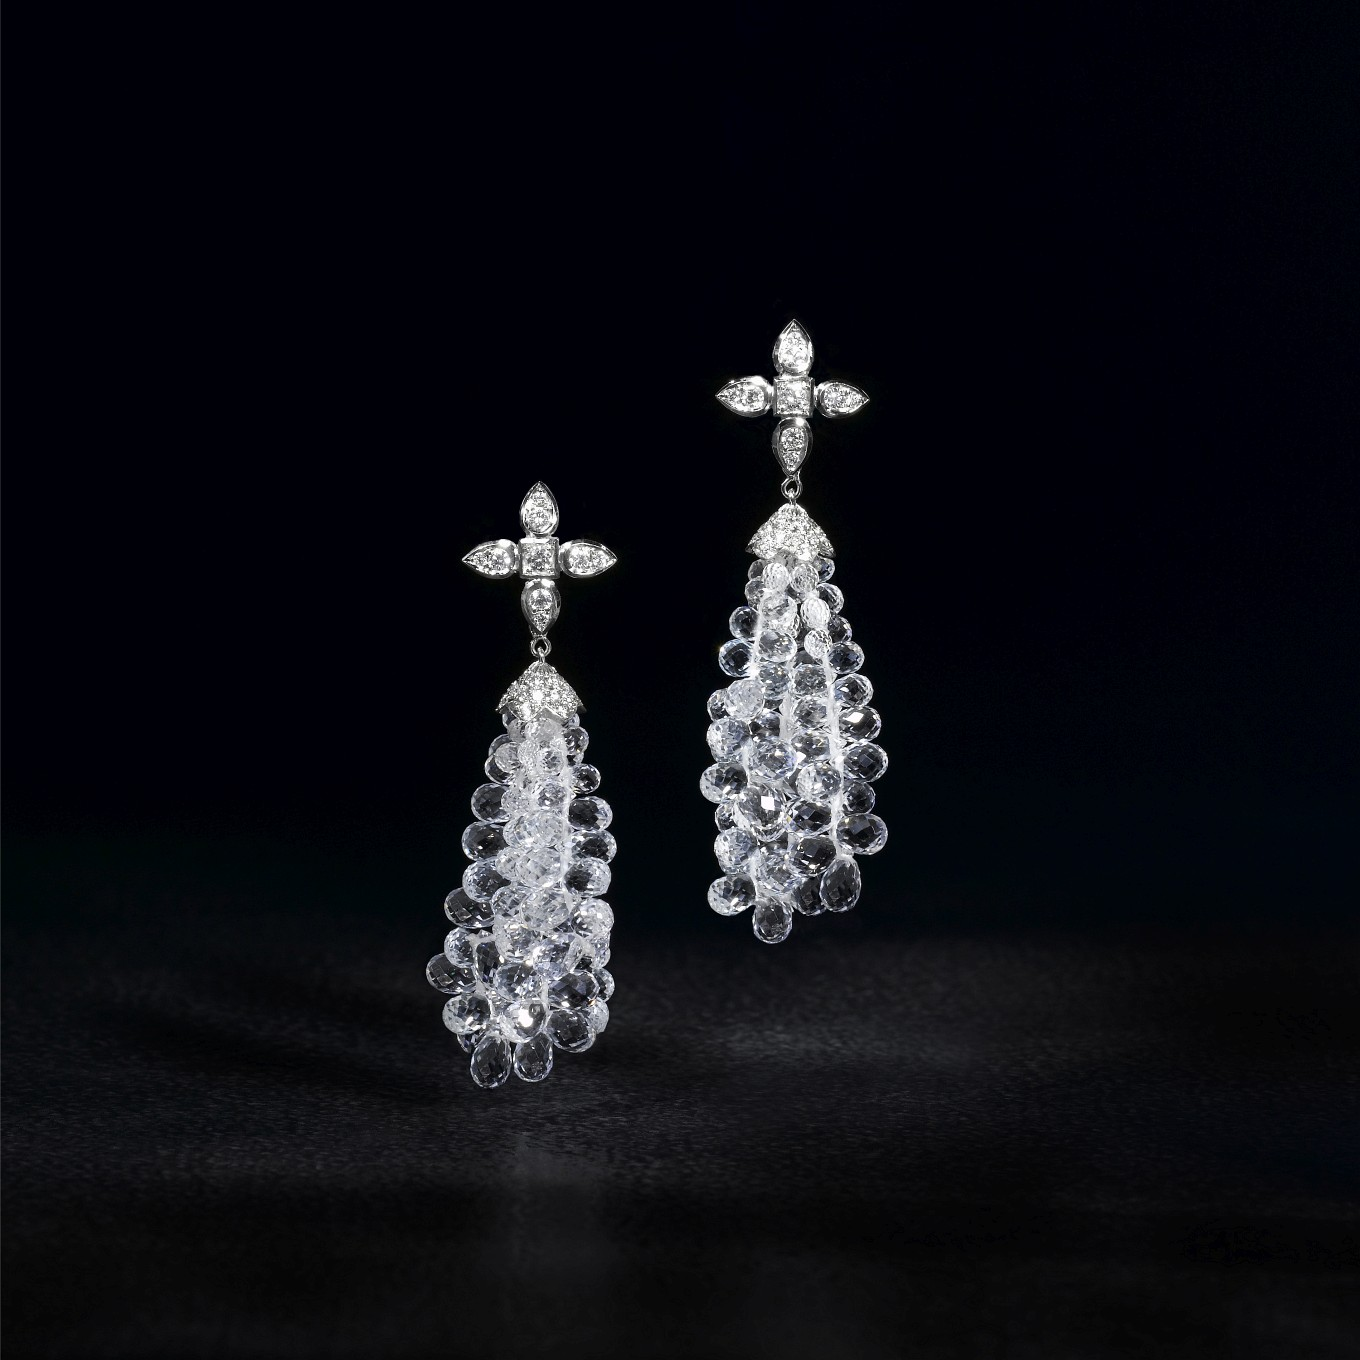 SEVILLA DIAMOND EARRINGS WITH DETACHABLE WHITE TOPAZ BRIOLETTE DROPS